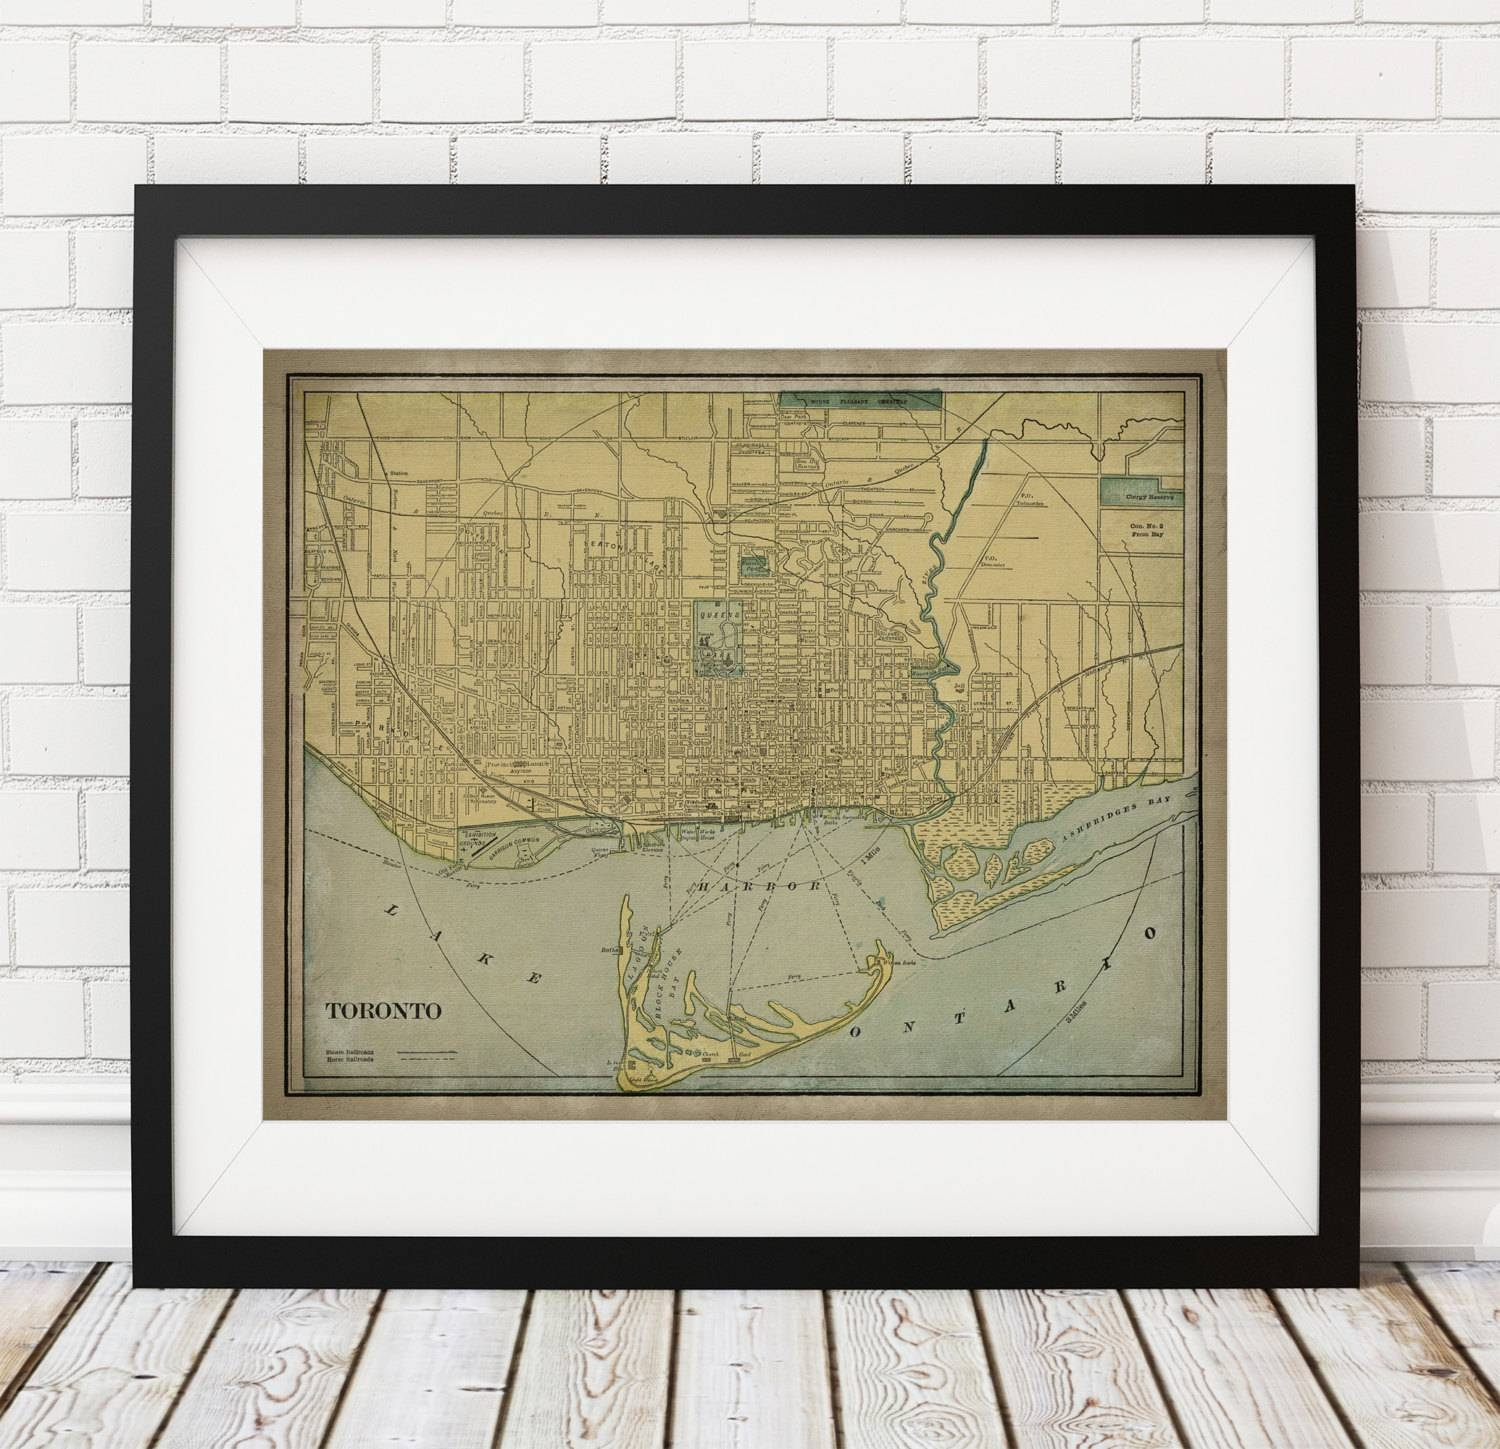 Toronto Map Print, Vintage Map Art, Antique Map, Canadian Wall Art In Most Recent Toronto Map Wall Art (Gallery 3 of 20)